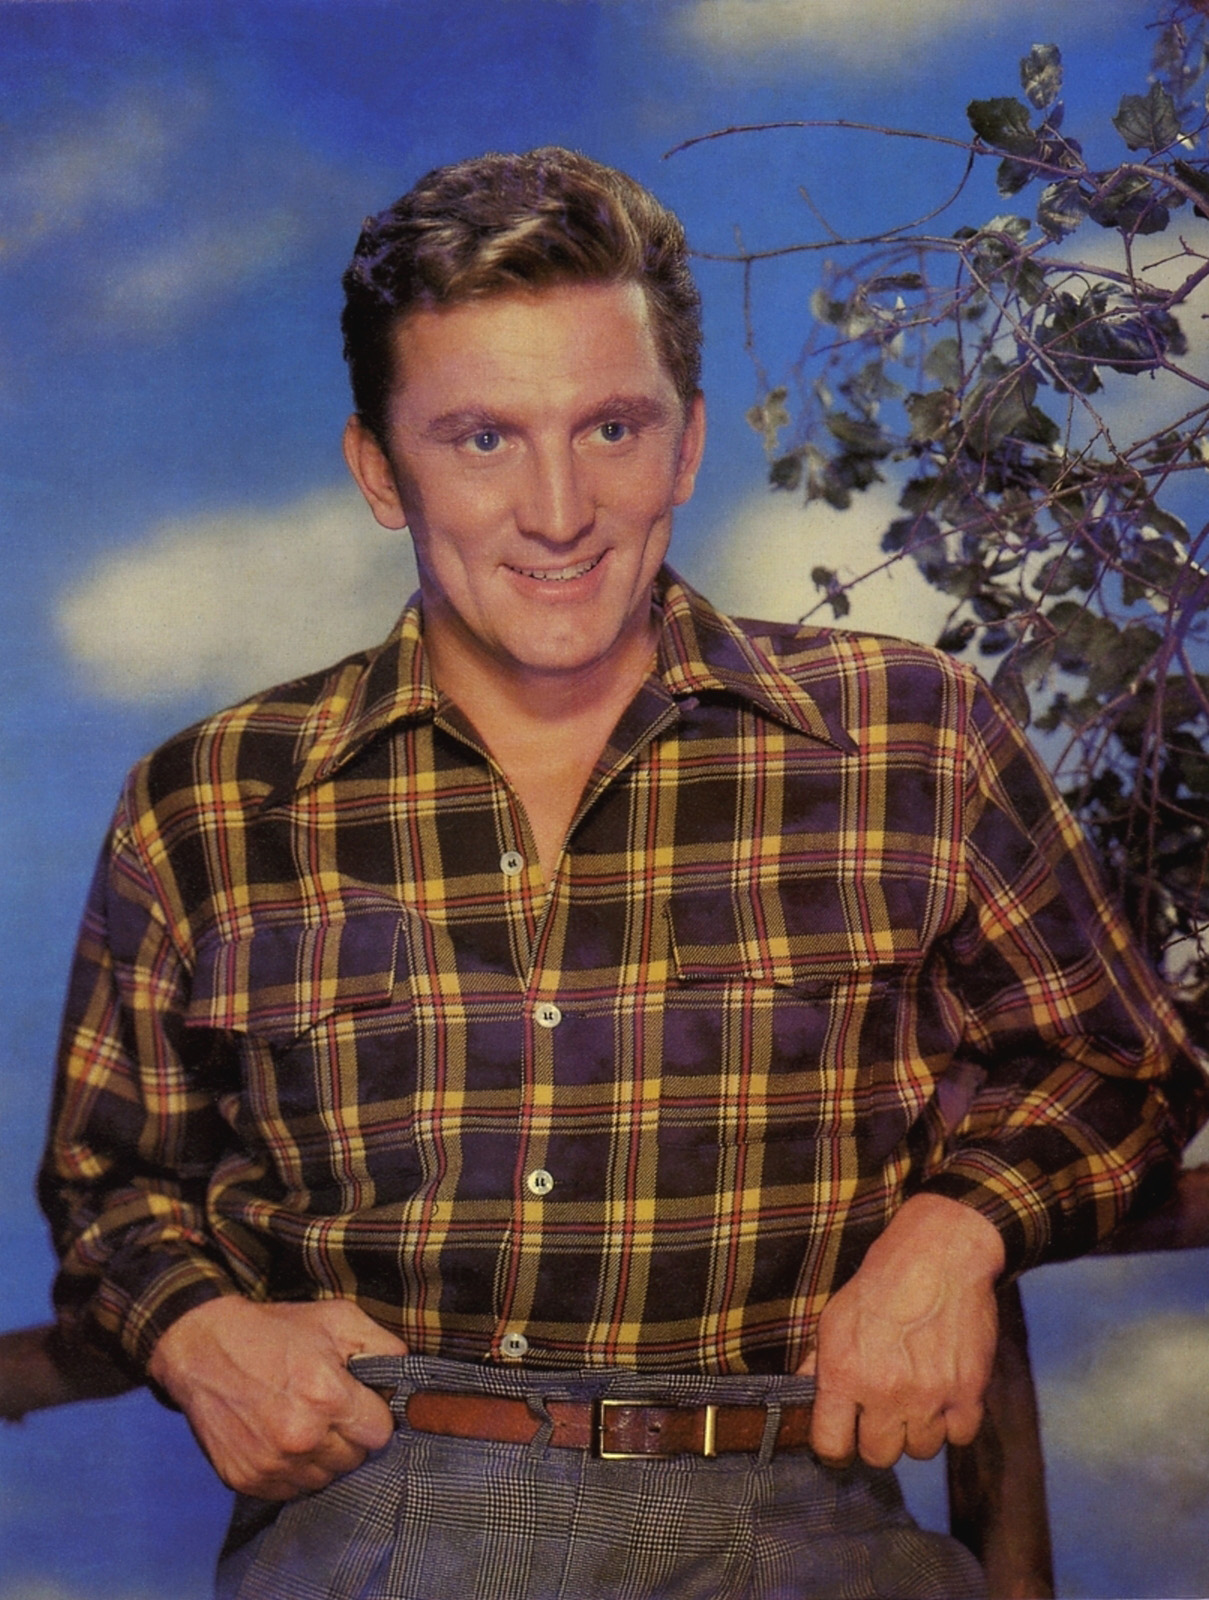 Young Kirk Douglas wearing check shirt and a smile on his face